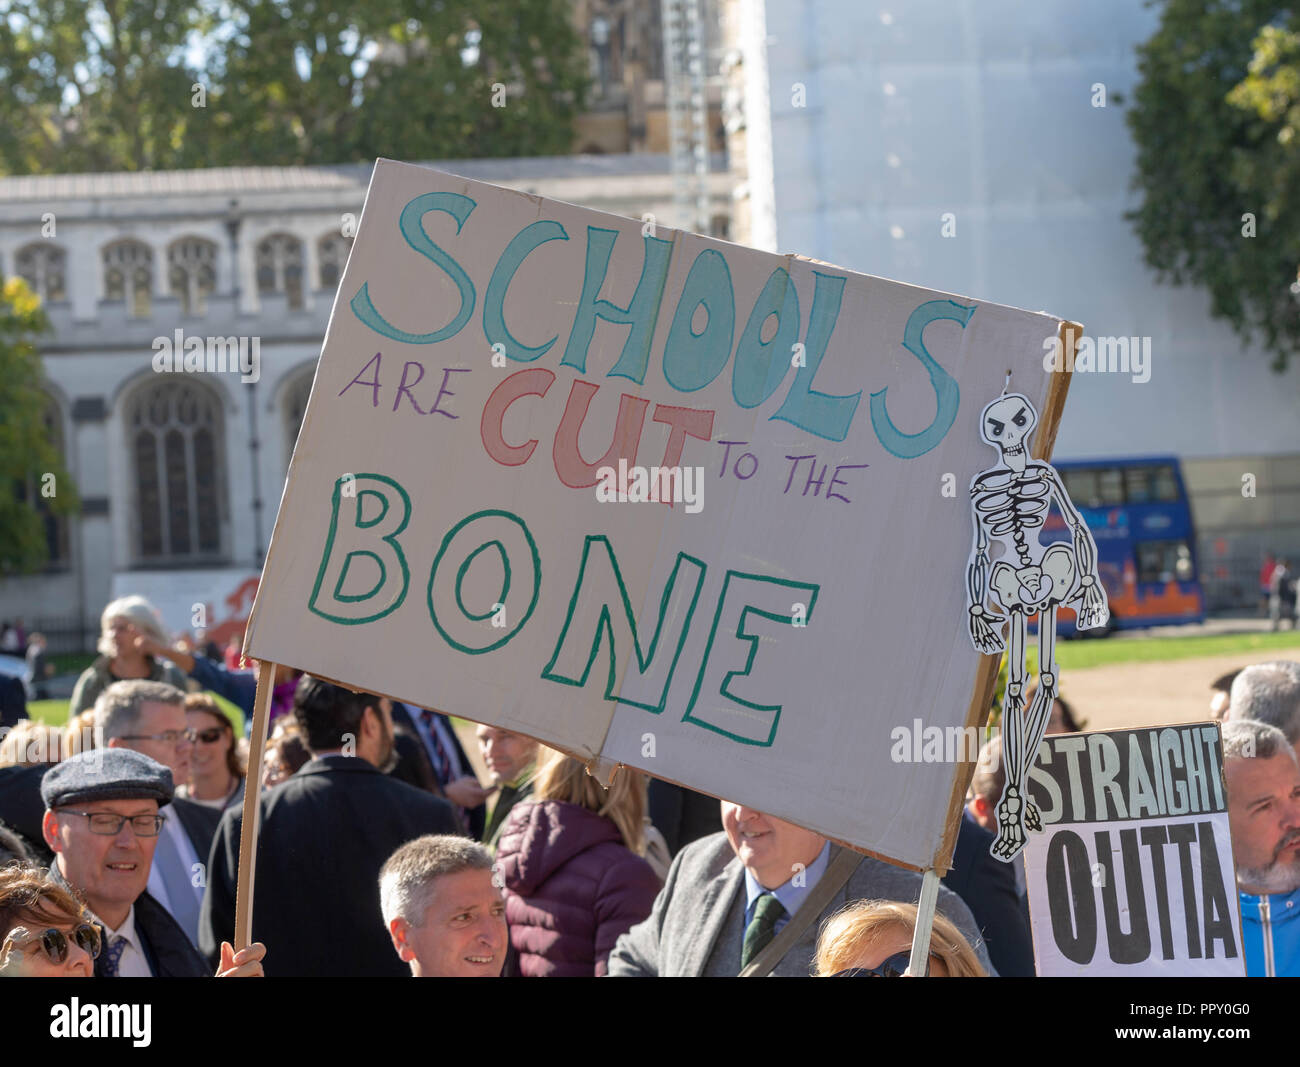 London 28th September 2018  Head Teachers rally in Westminster seeking an increase in educational funding. Head Teachers with a 'Schools cut to the Bone home made banner at the proest Credit Ian Davidson/Alamy Live News - Stock Image